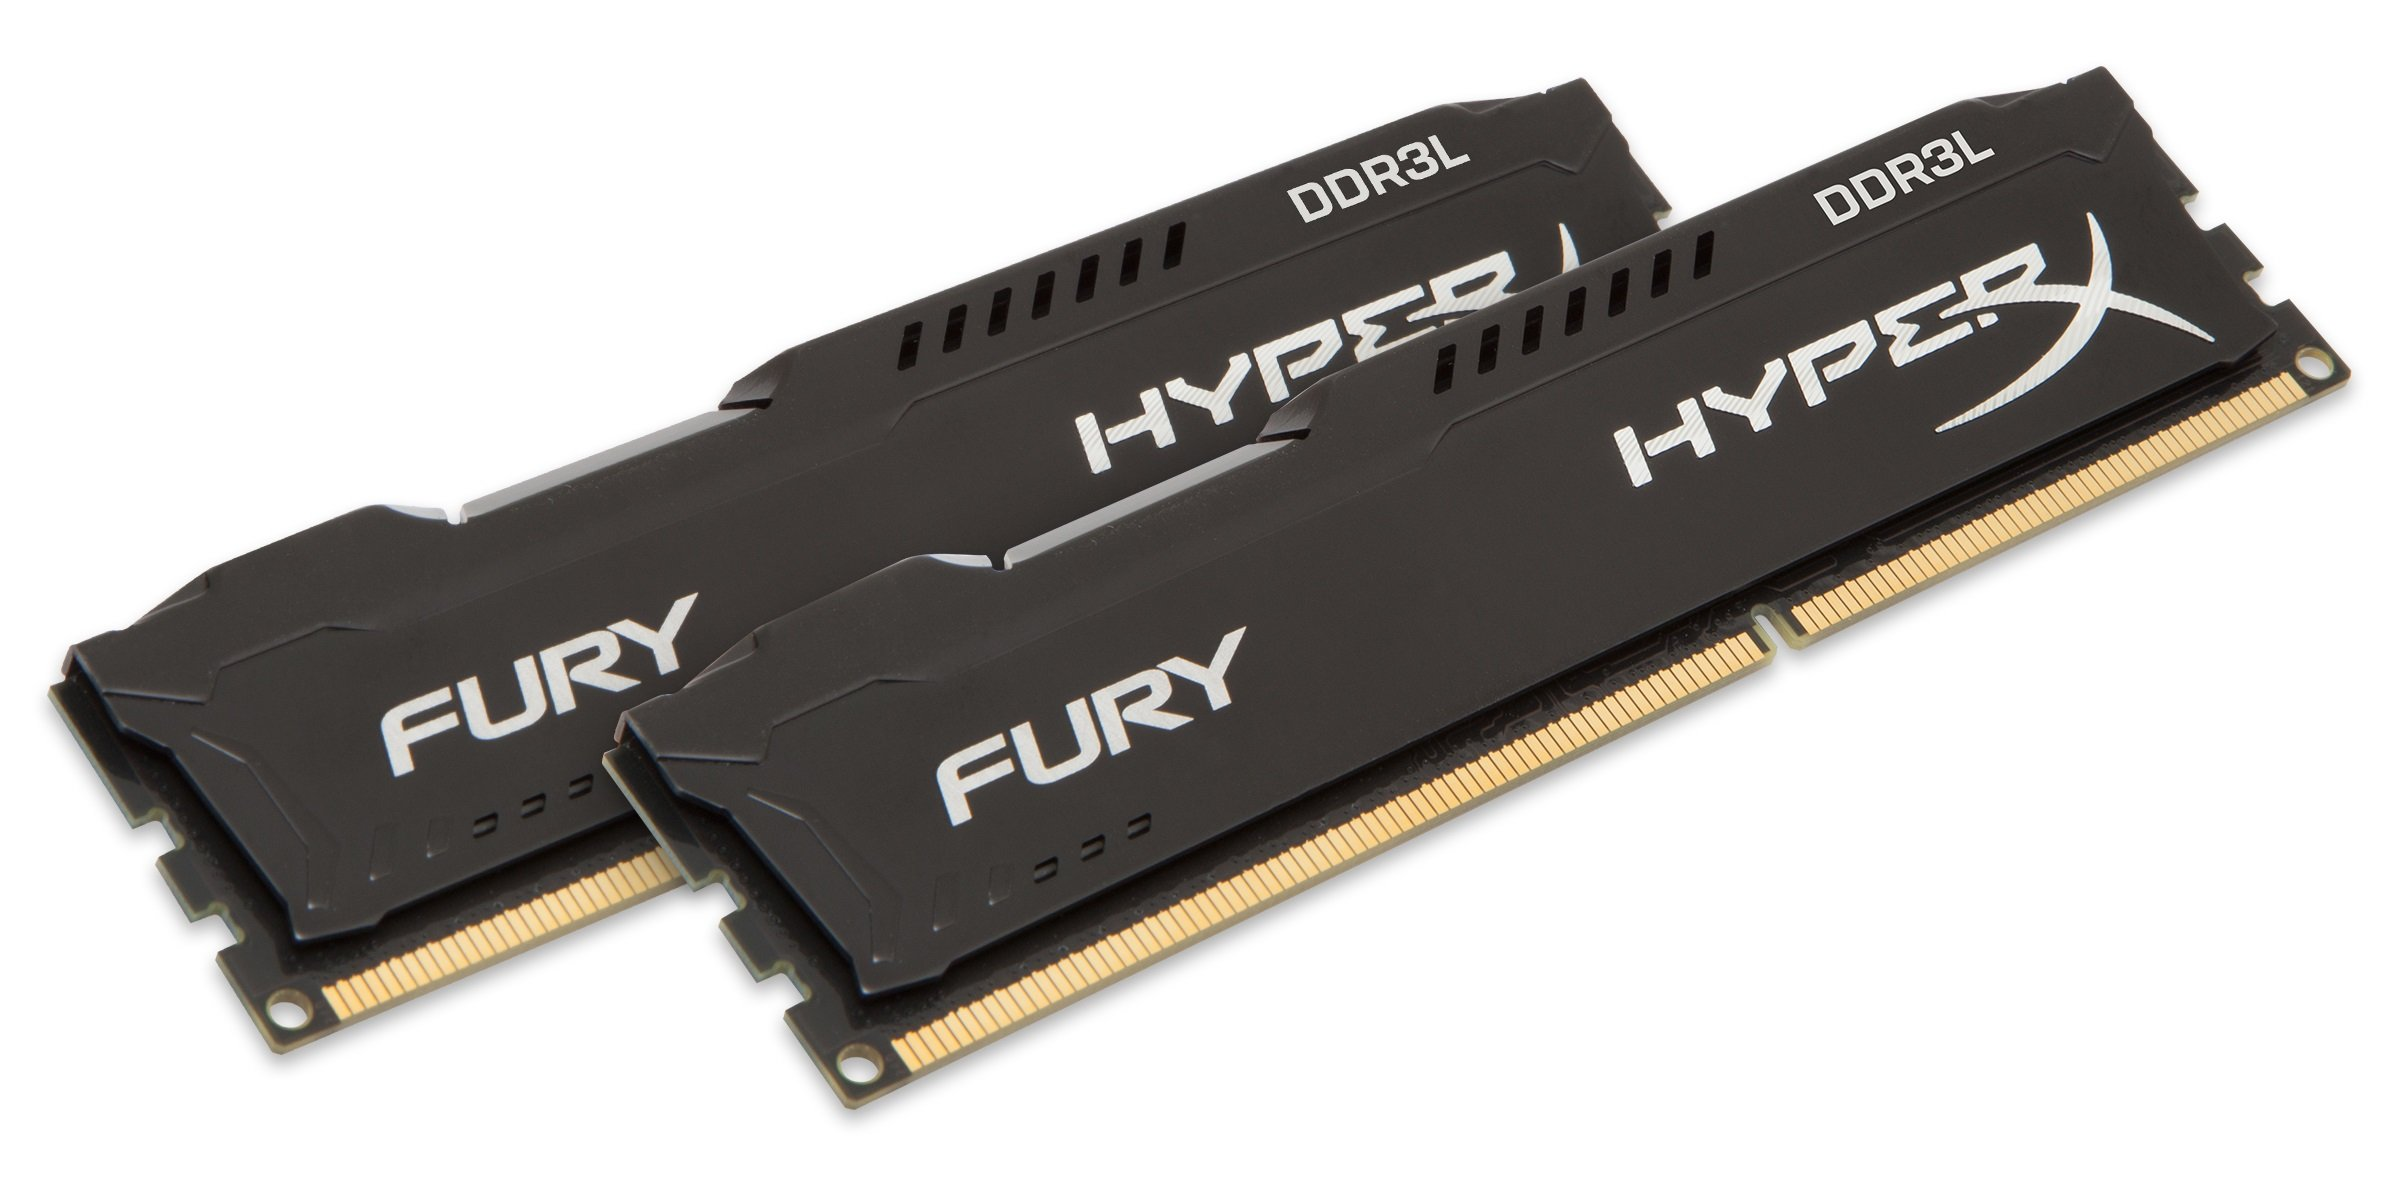 Kingston Technology HyperX FURY Black 16GB Kit (2 x 8GB)1600MHz DDR3L Desktop Memory HX316LC10FBK2/16